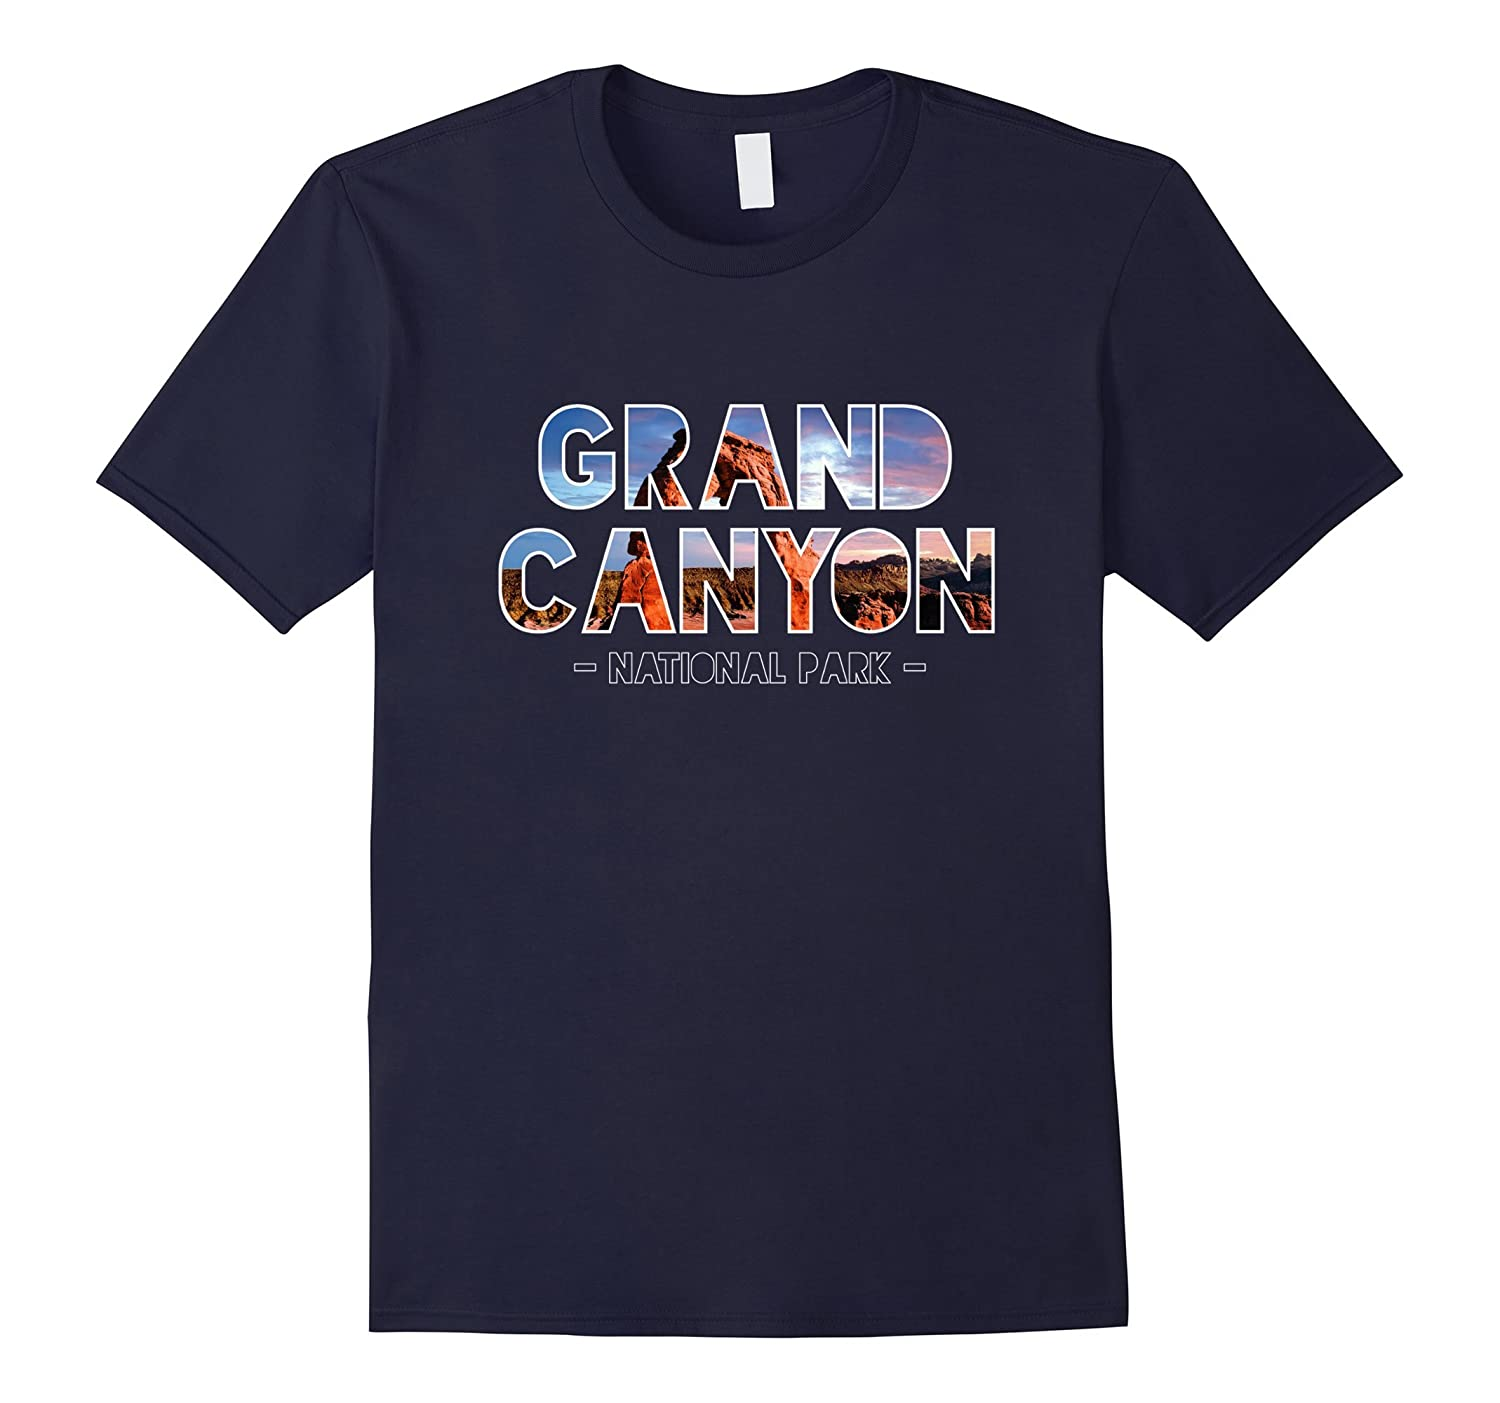 Grand Canyon National Park T Shirt - Arizona Souvenir Gift-TJ